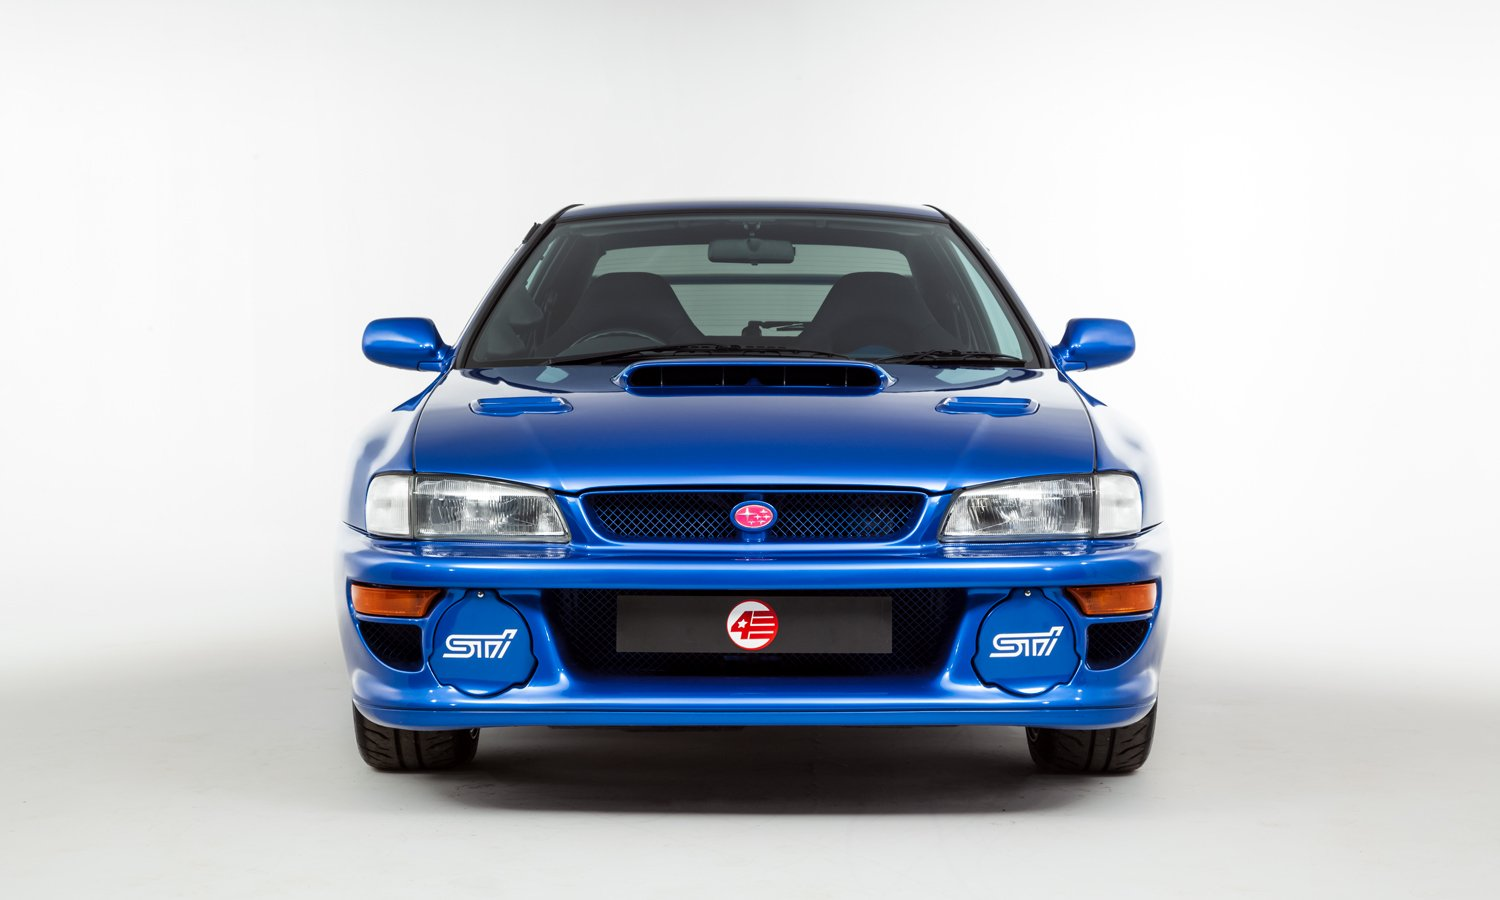 Subaru-Impreza-22B-STi-1998-for-sale-1